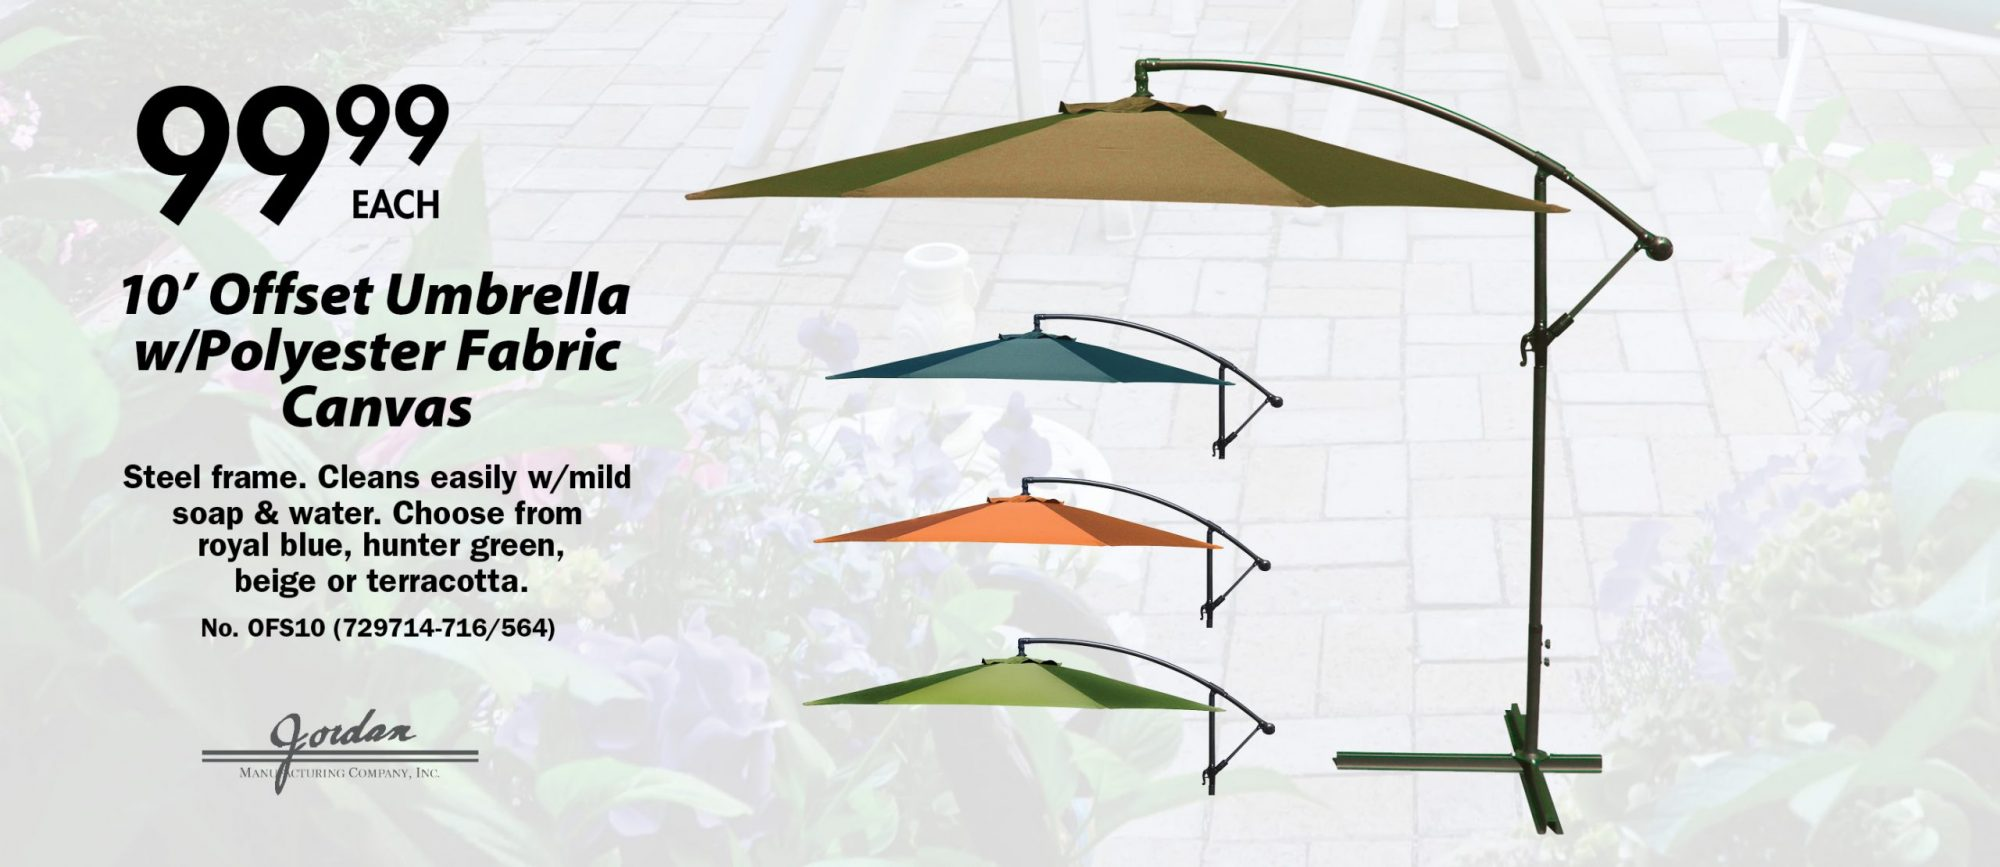 $99.99 each. 10' Offset Umbrella  w/Polyester Fabric Canvas Steel frame. Cleans easily w/mild soap & water. Choose from  royal blue, hunter green,  beige or terracotta. No. OFS10 (729714-716/564)